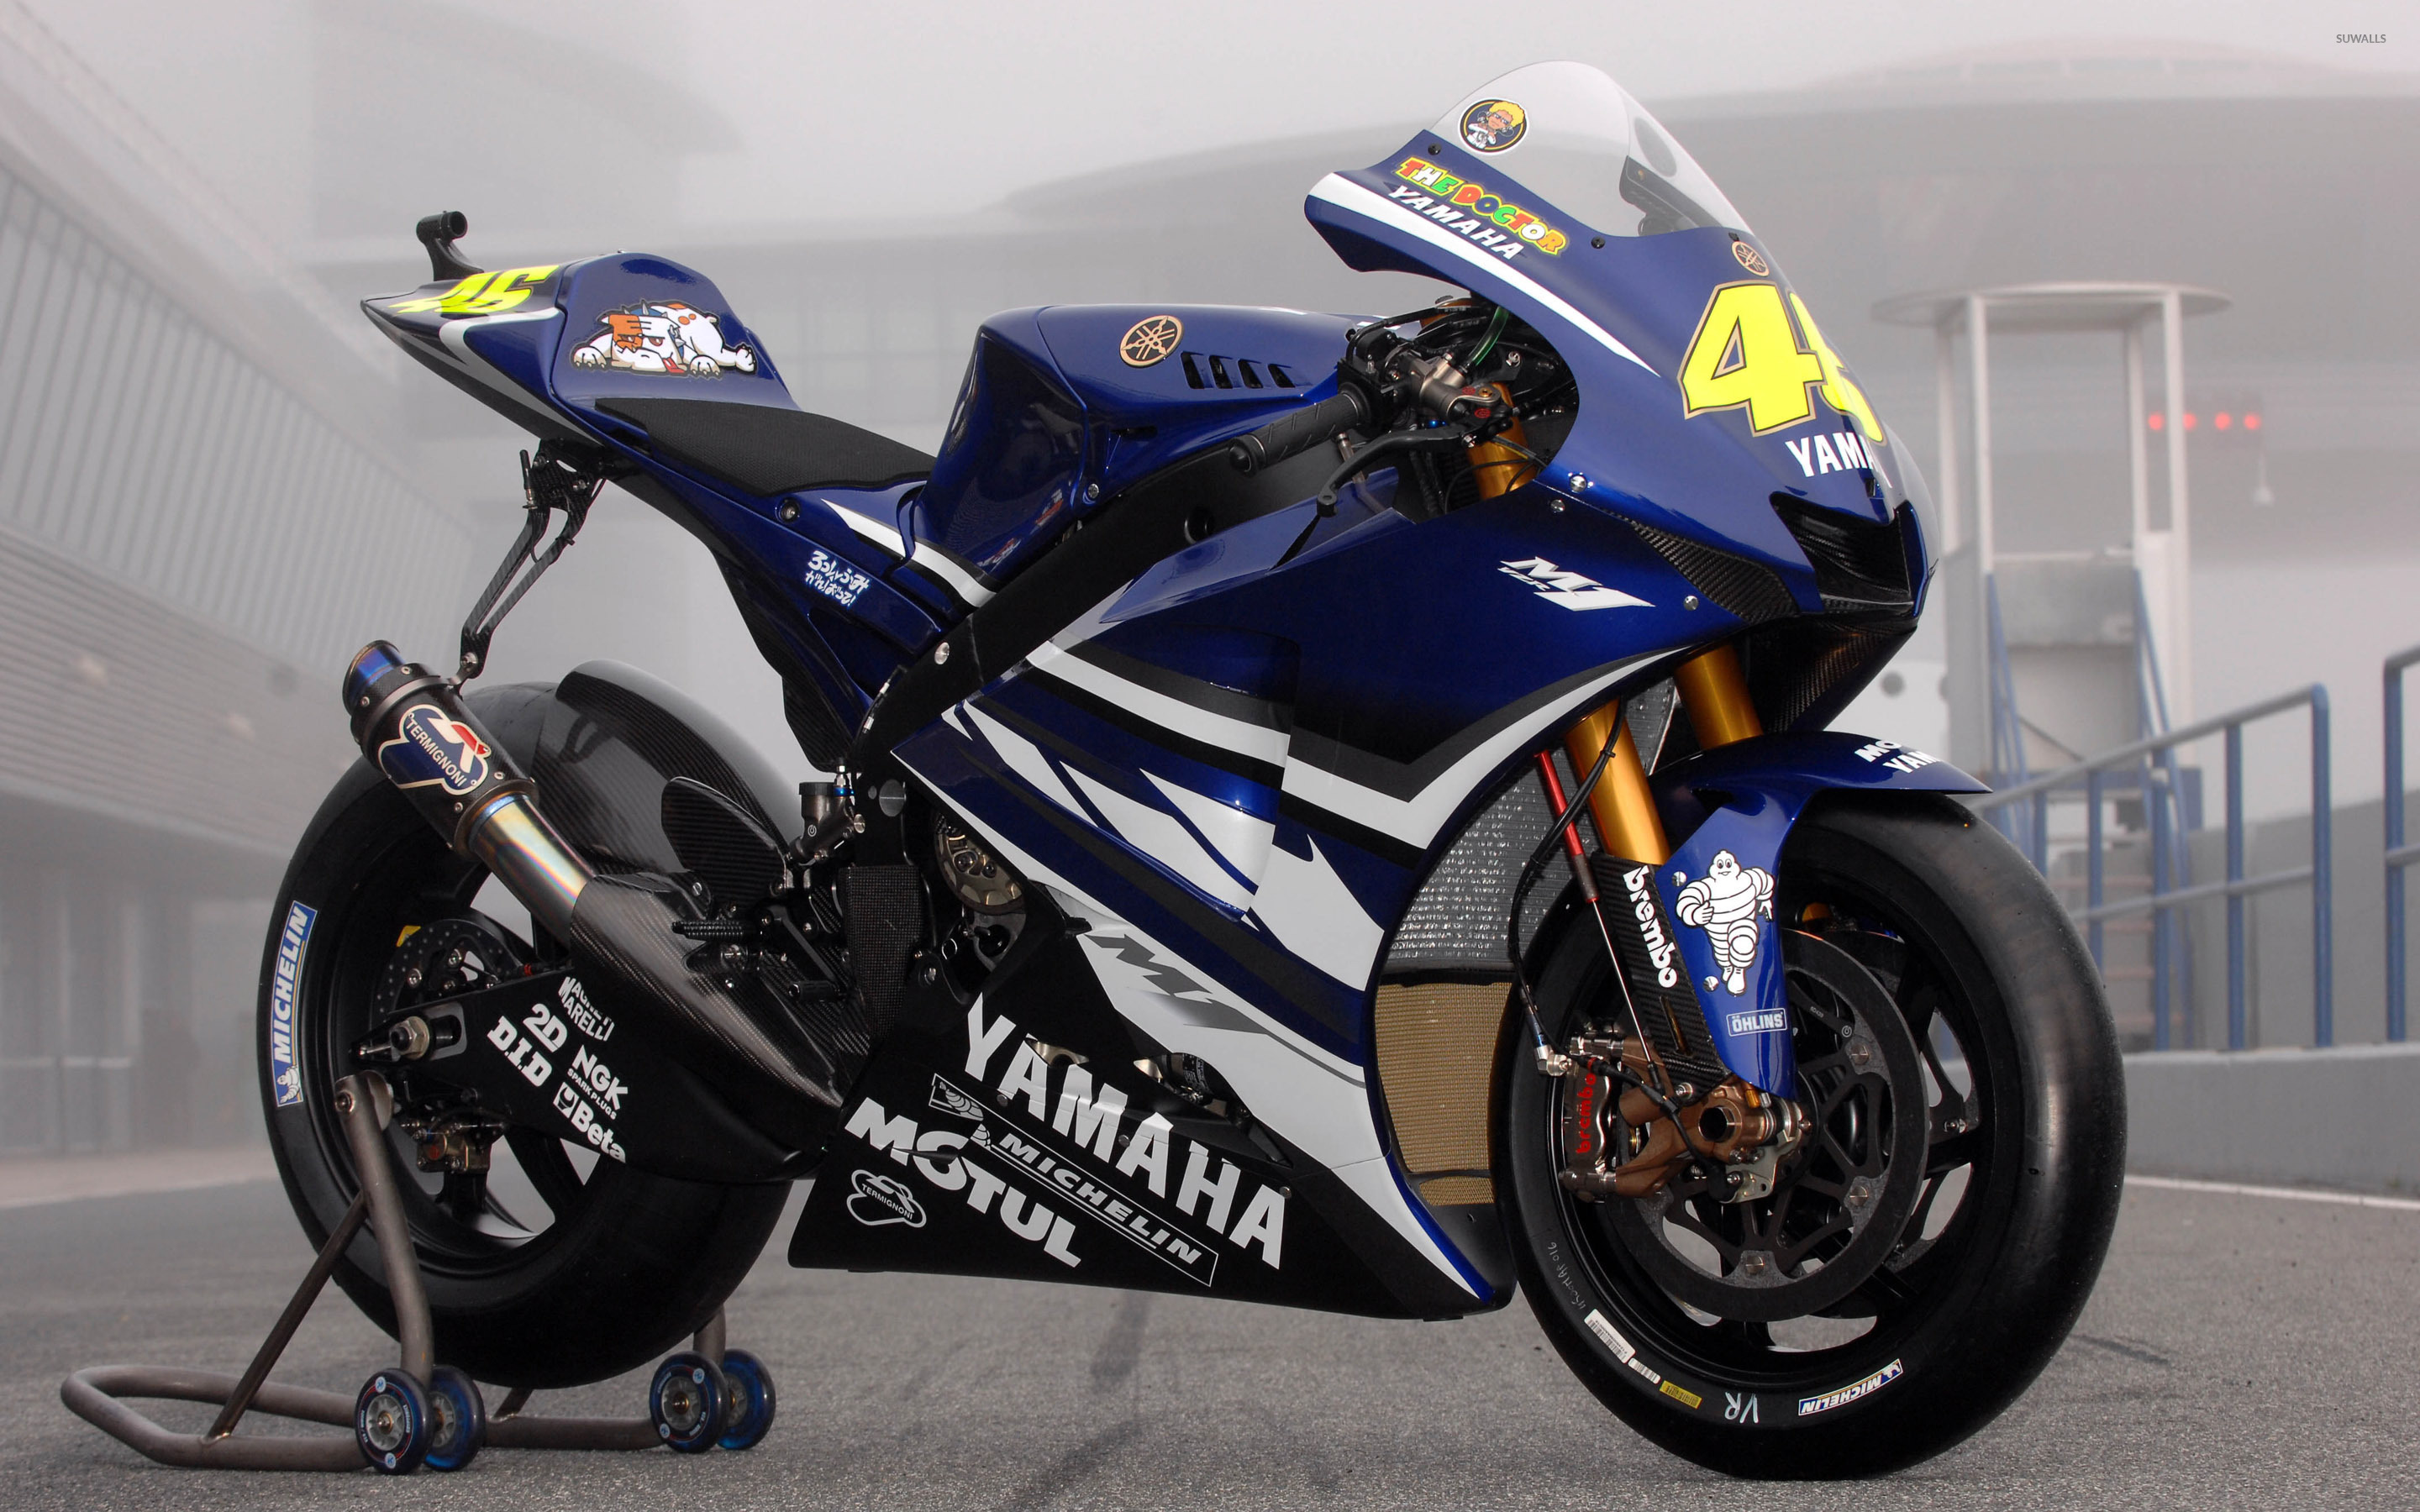 yamaha yzr-m1 wallpaper - motorcycle wallpapers - #30595